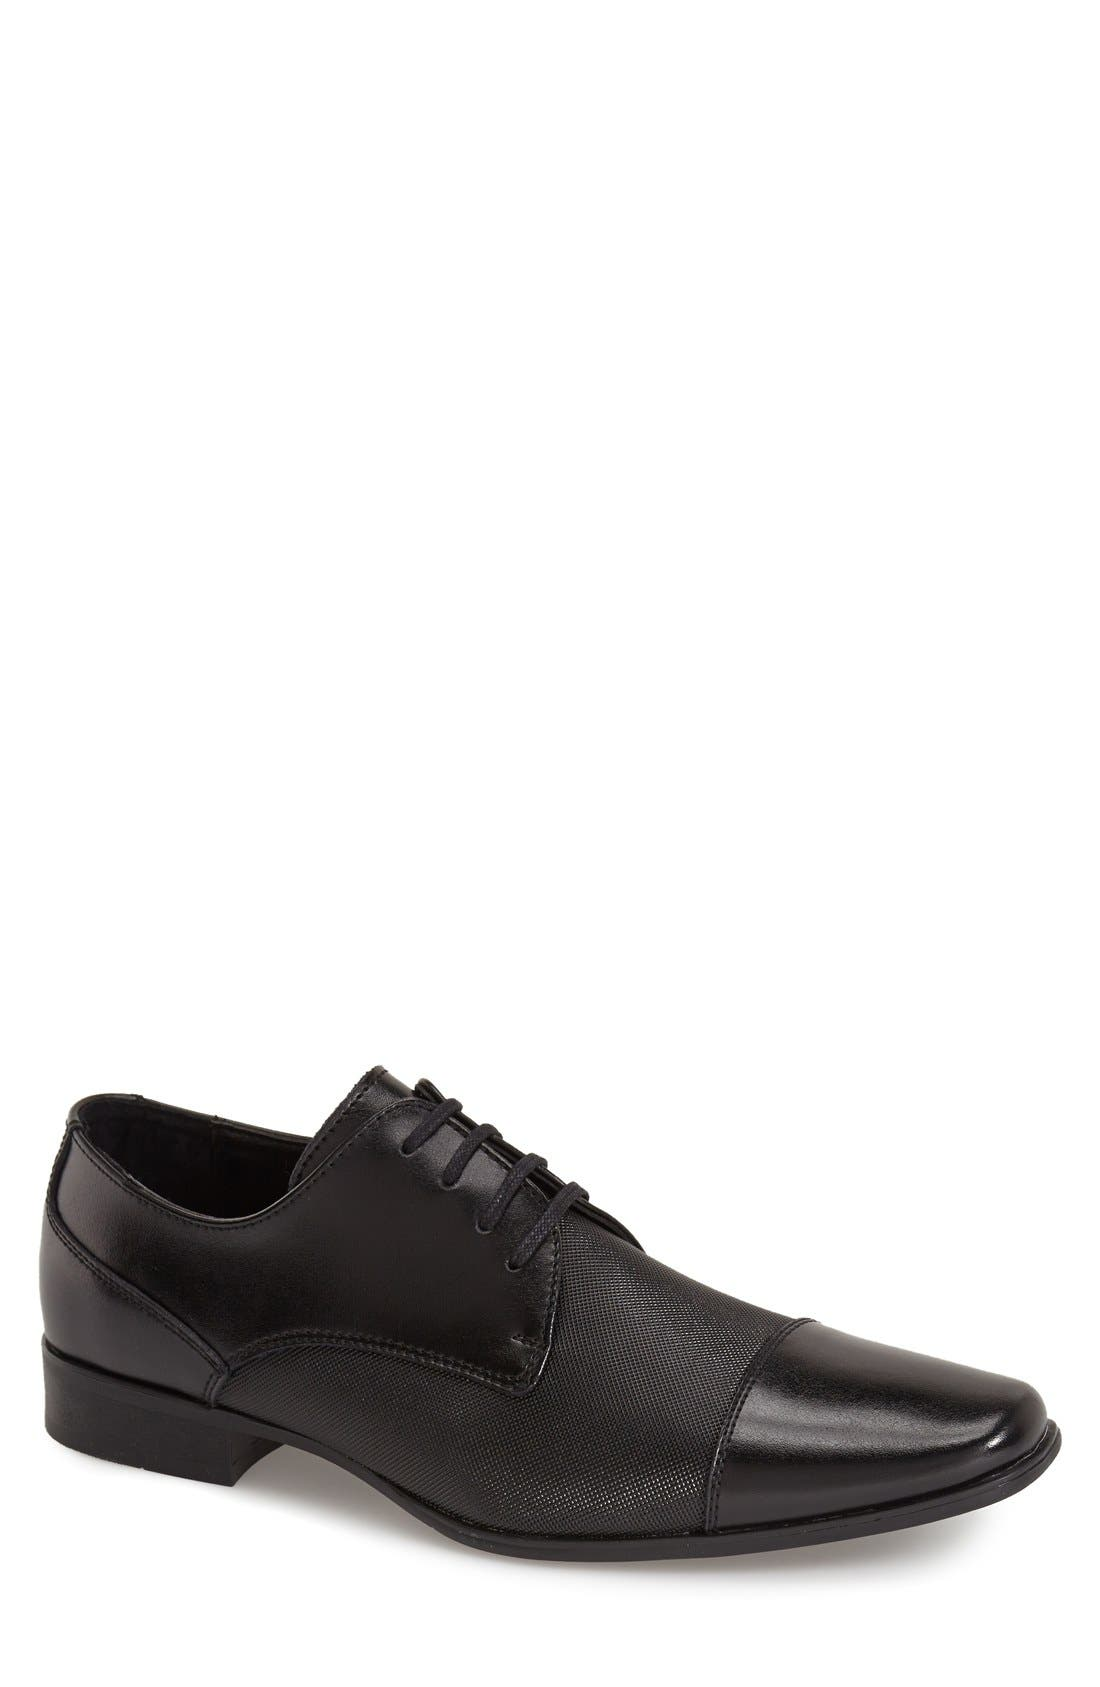 'Bram' Cap Toe Derby,                             Main thumbnail 1, color,                             Black